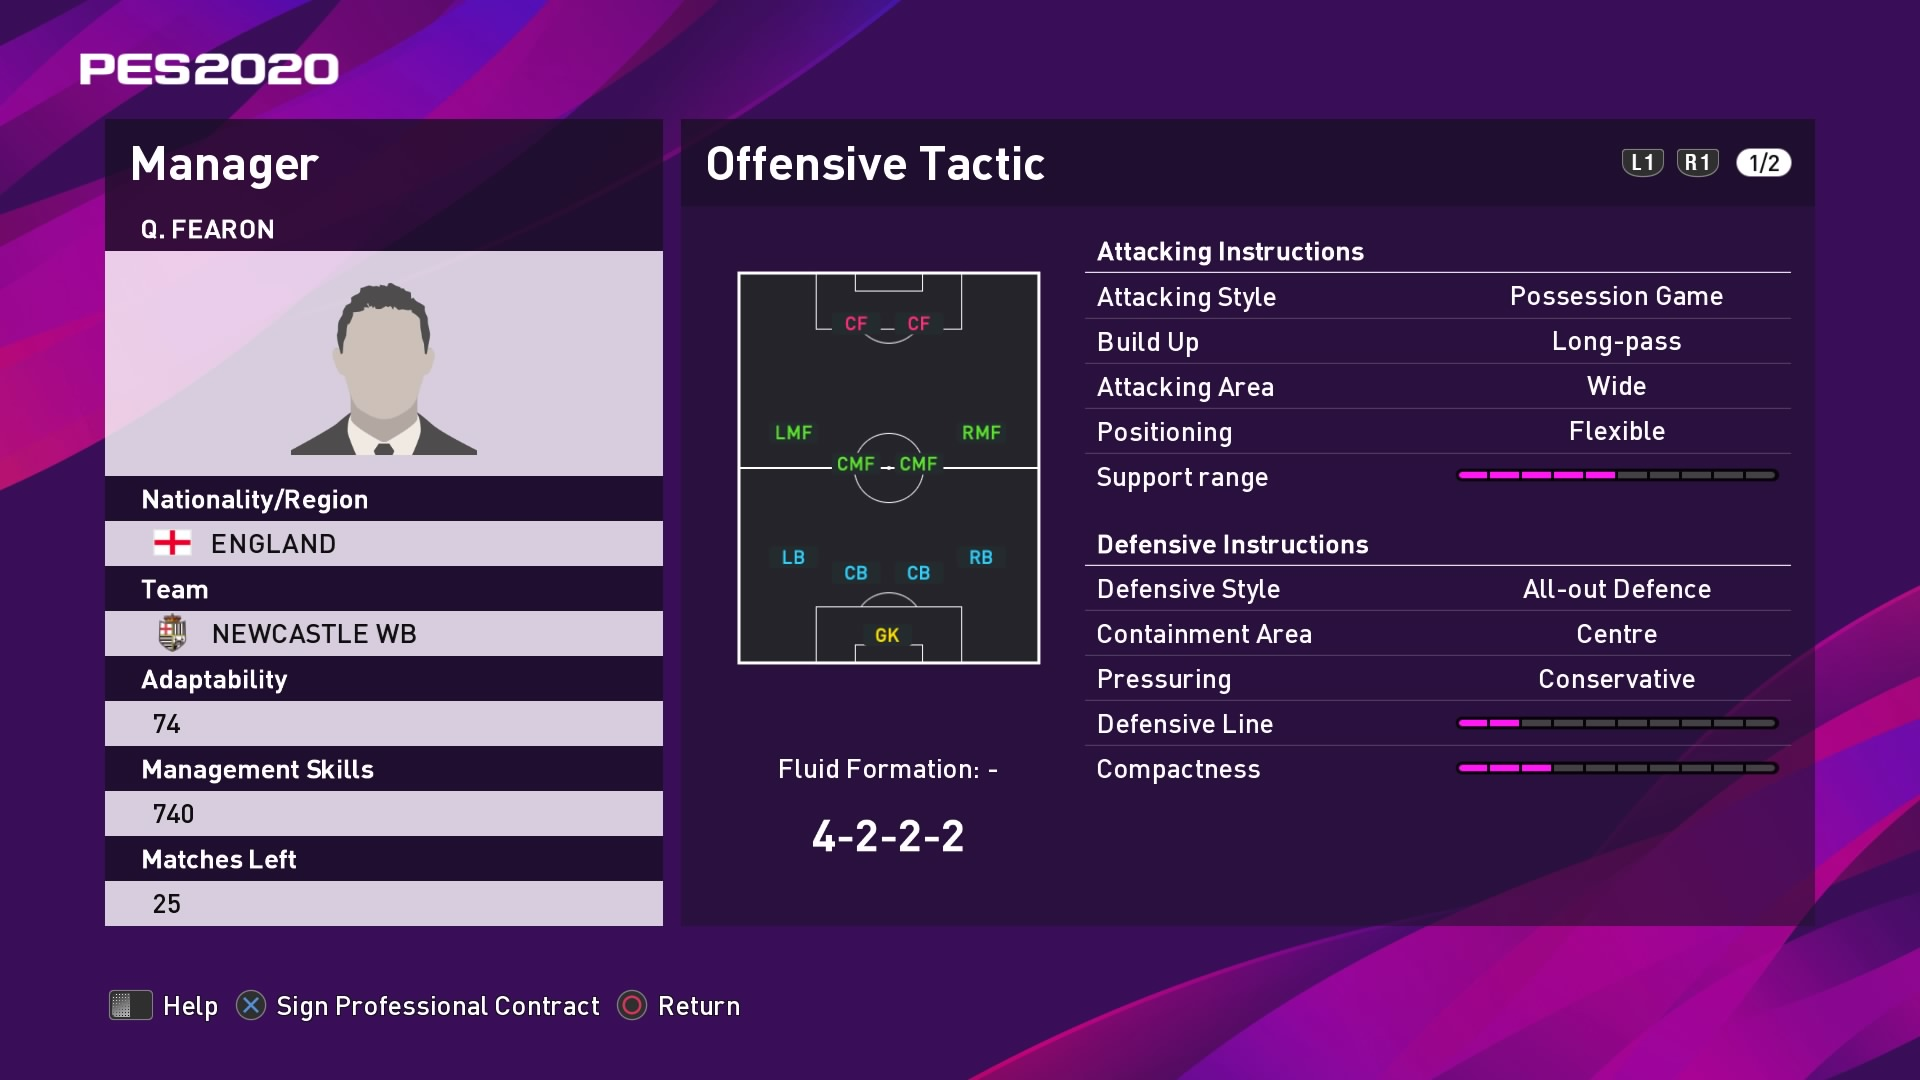 Q. Fearon (Steve Bruce) Offensive Tactic in PES 2020 myClub